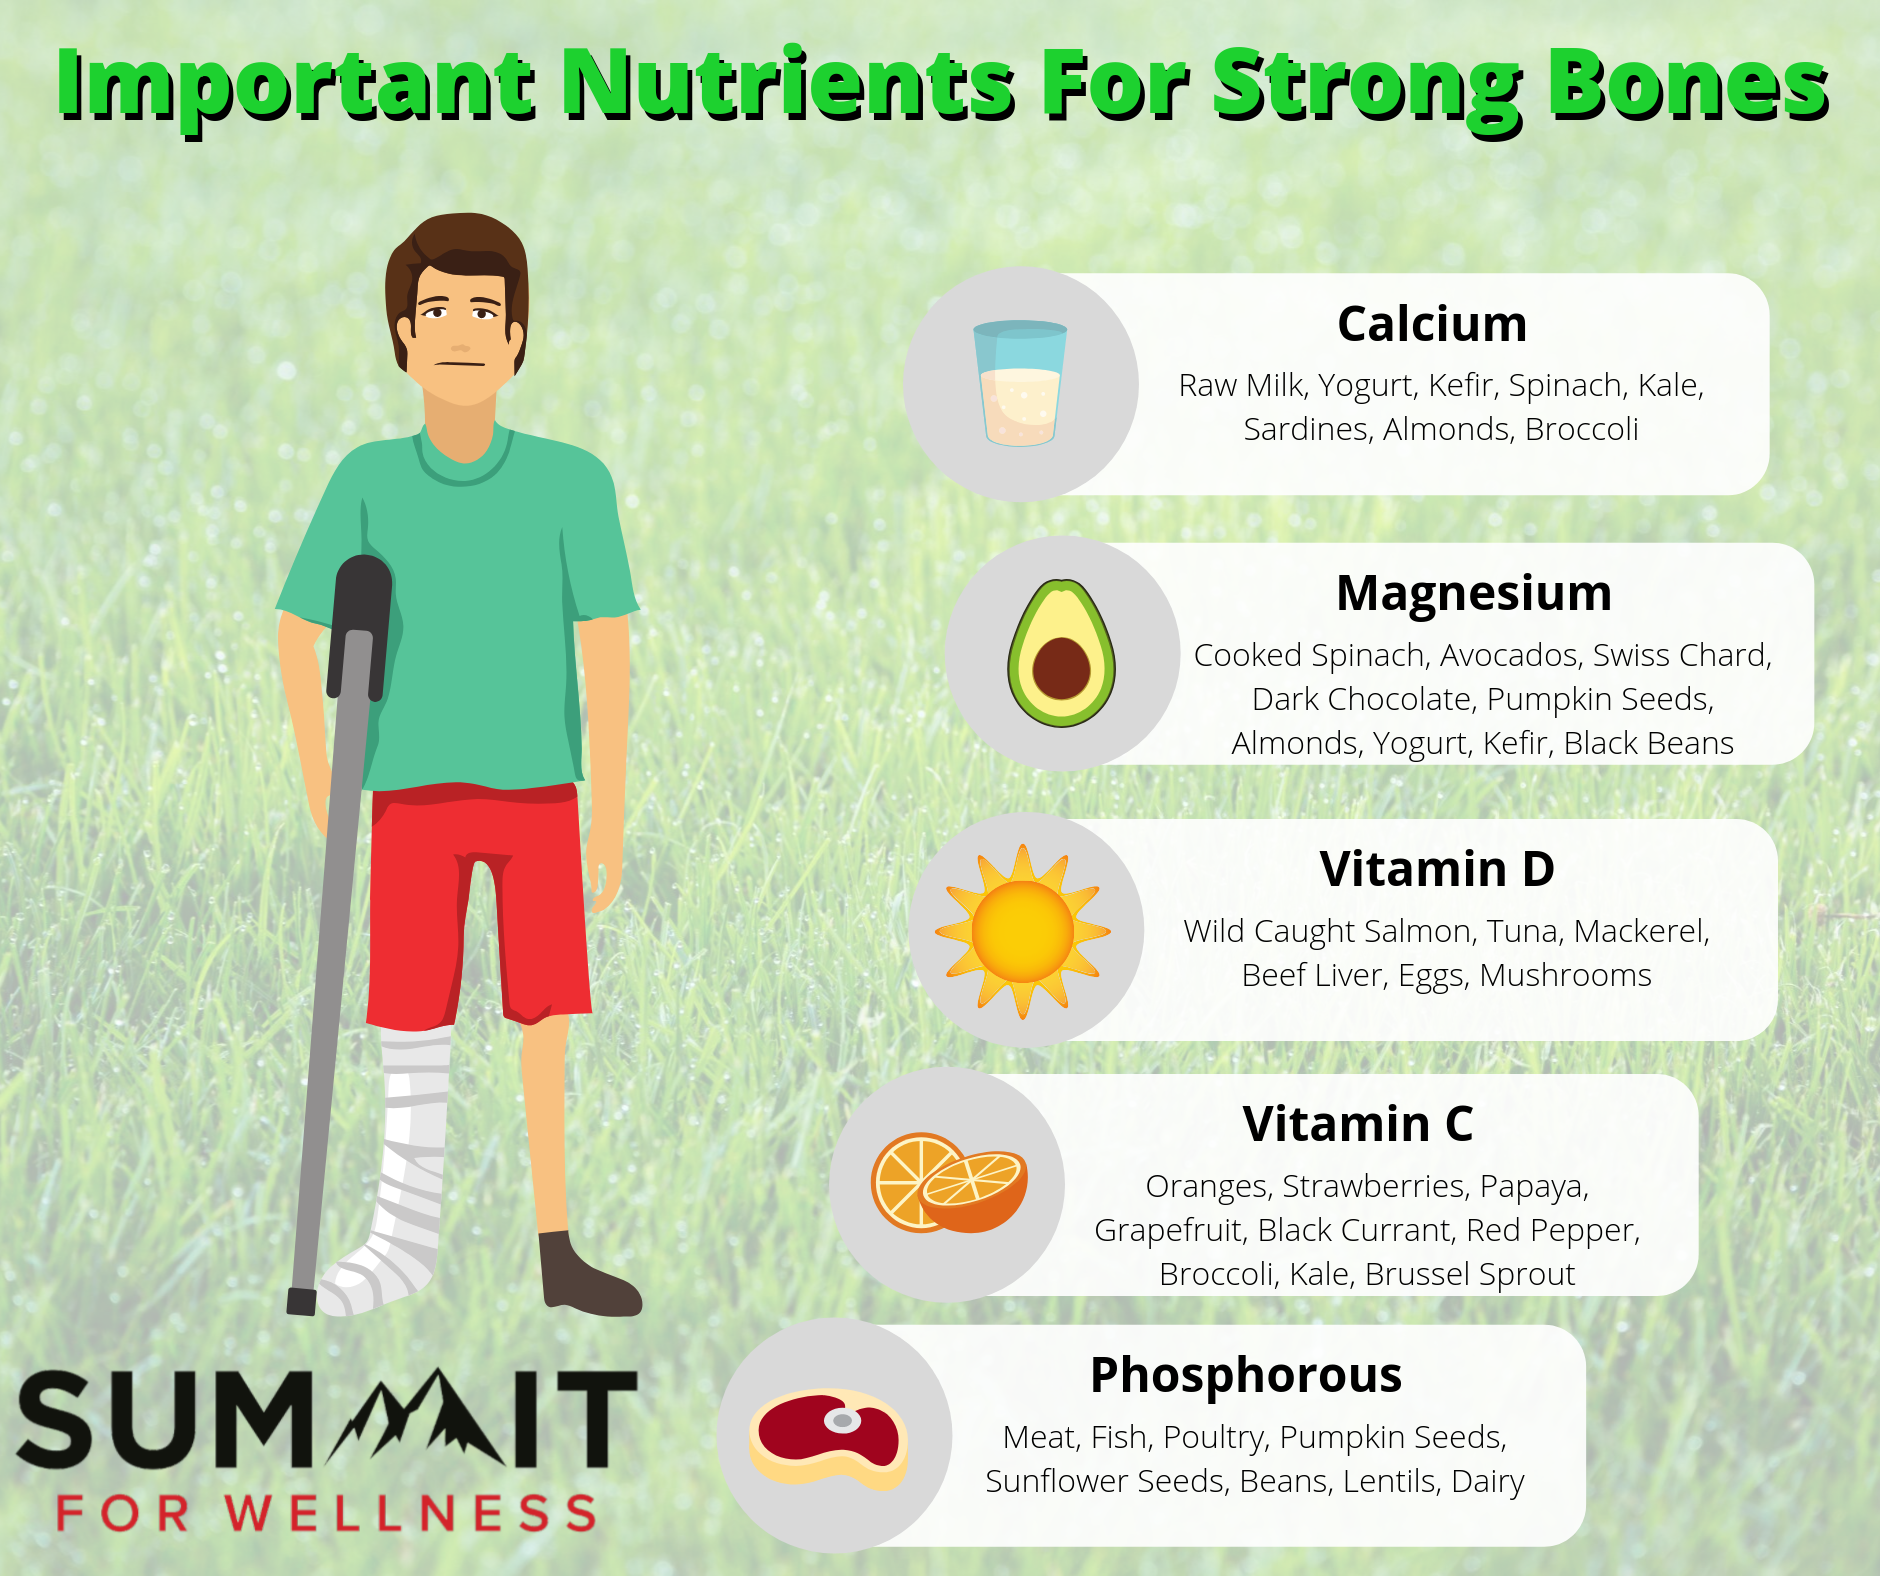 It takes a lot of nutrients to heal bones, learn what foods contain these nutrients